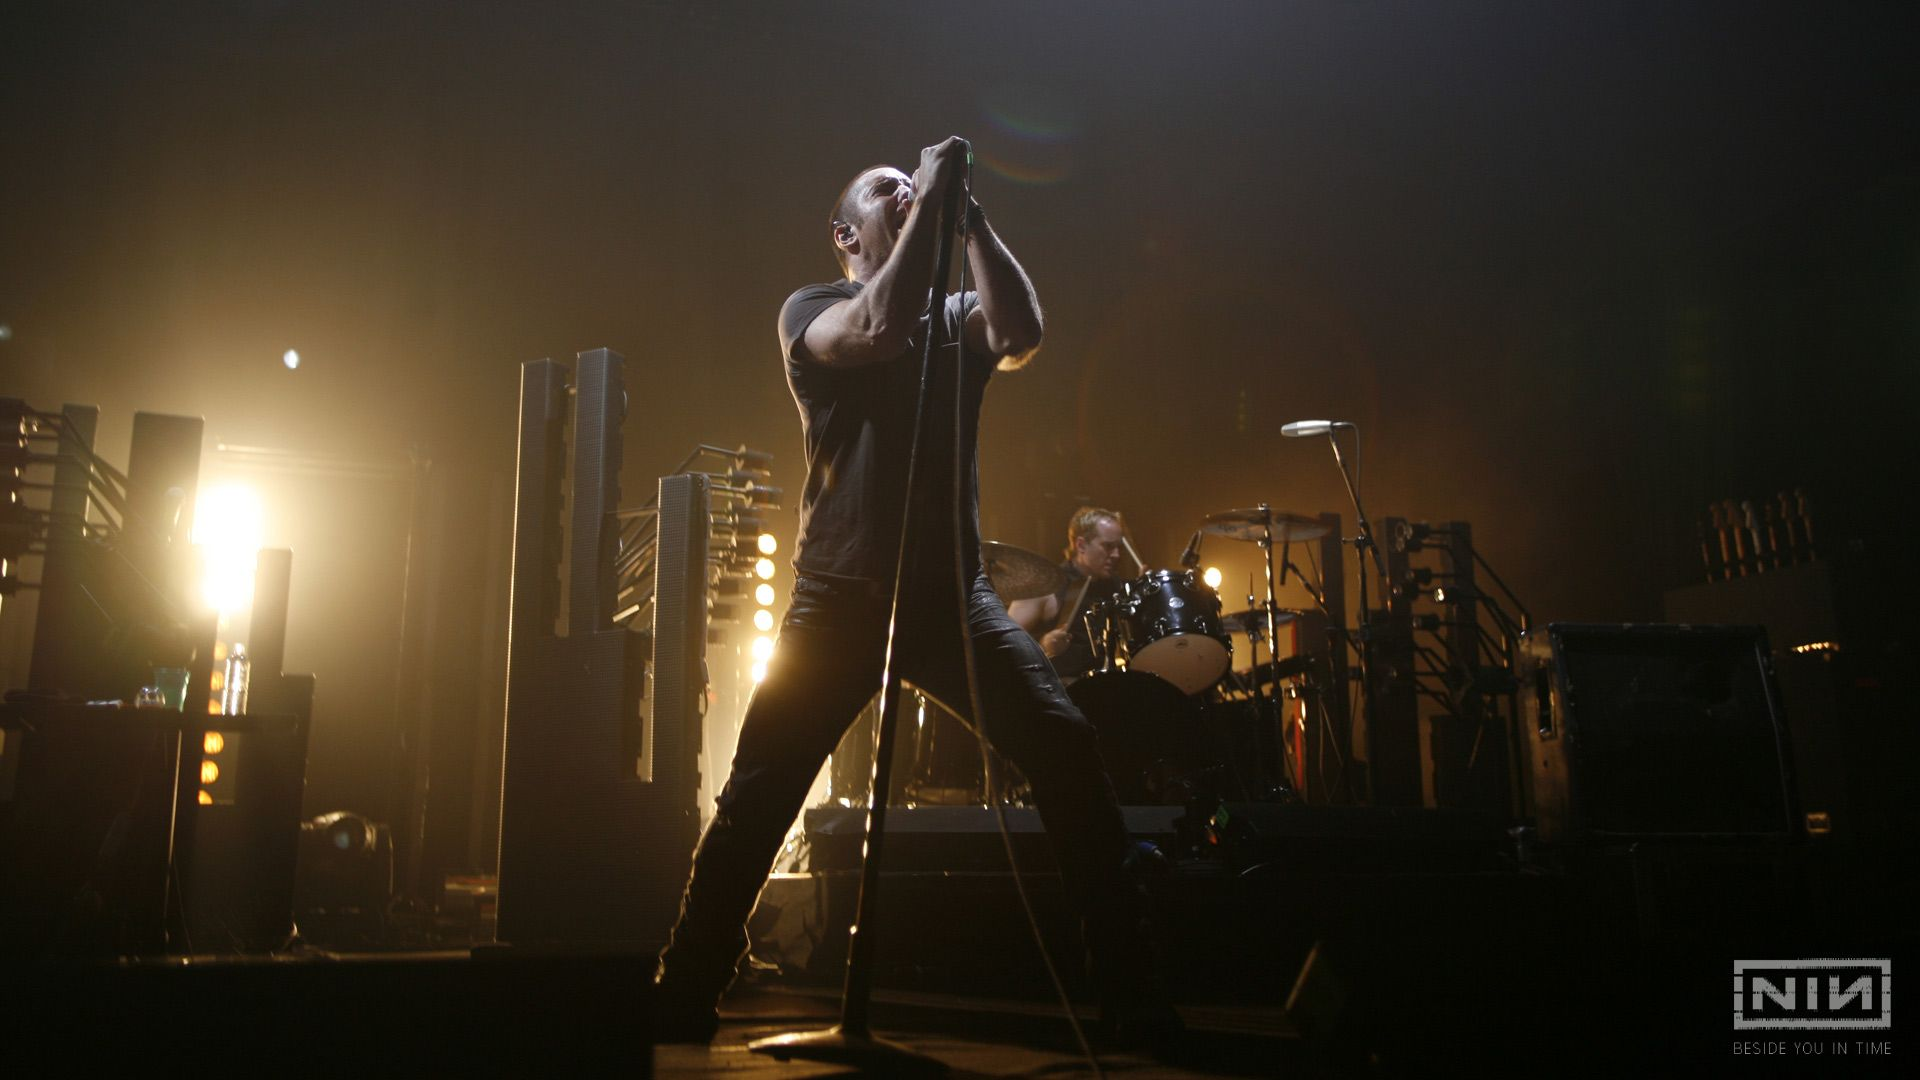 Nine Inch Nails | Bands | Pinterest | Trent reznor, Musica and Songs